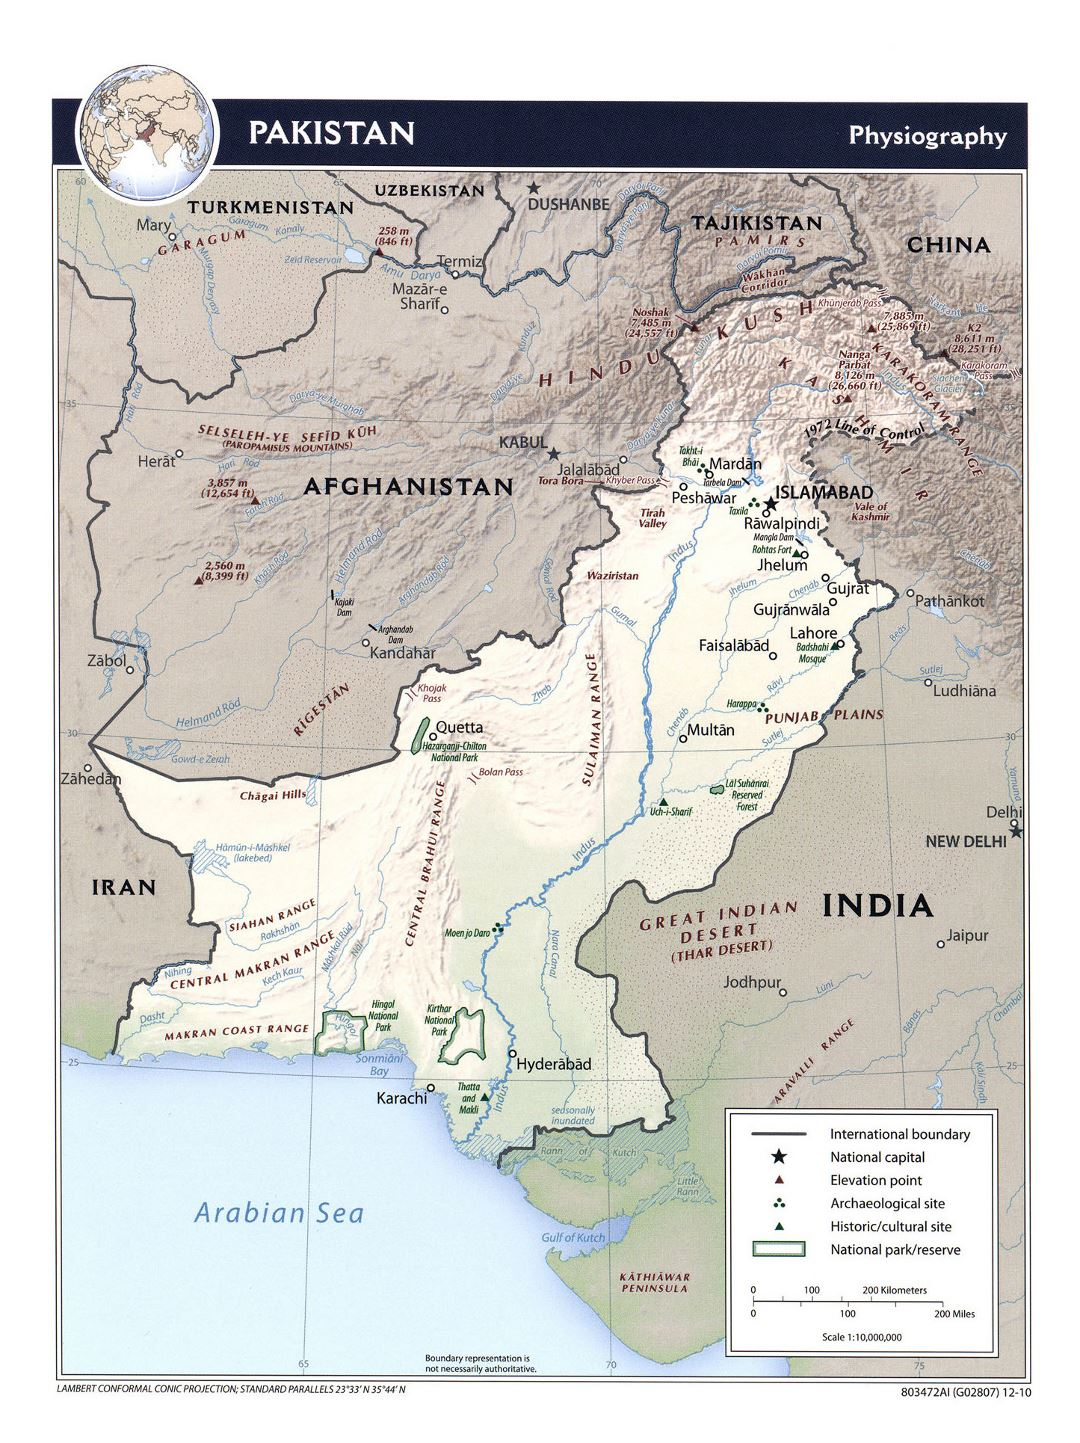 Detailed physiography map of Pakistan - 2010